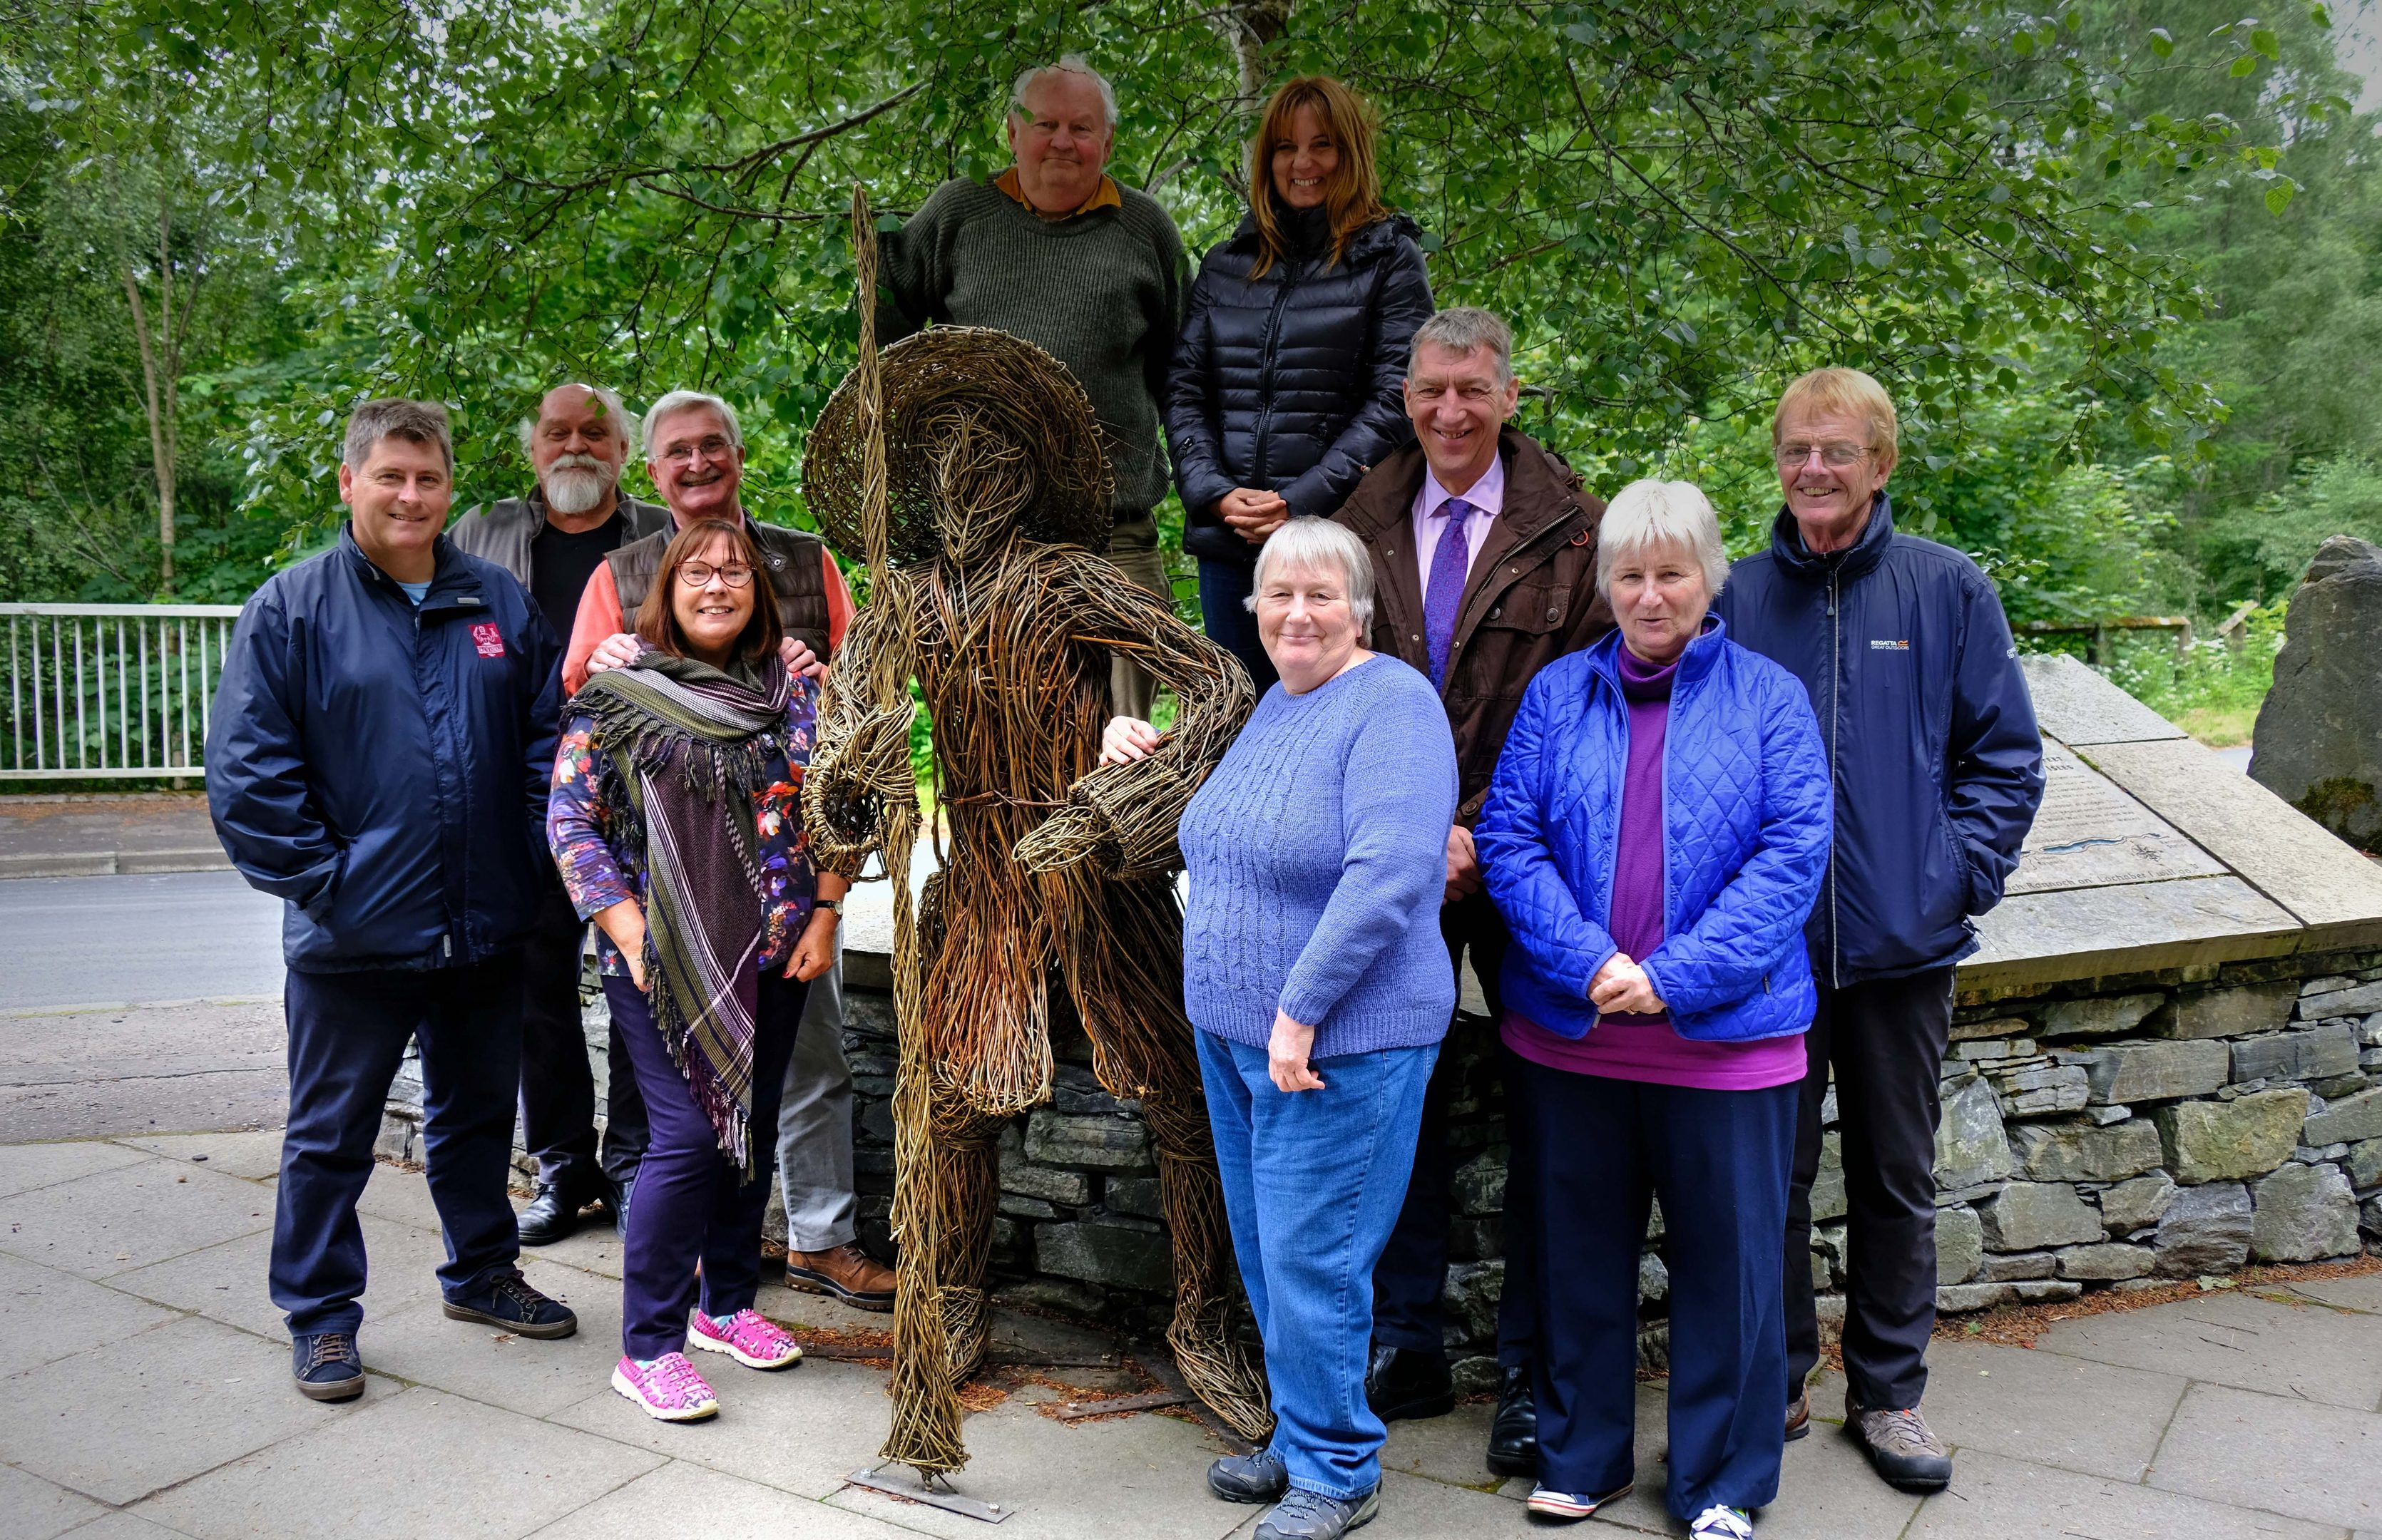 Members of the Soldiers of Killiecrankie committee with the wicker Scottish government soldier at the Garry Bridge car park.